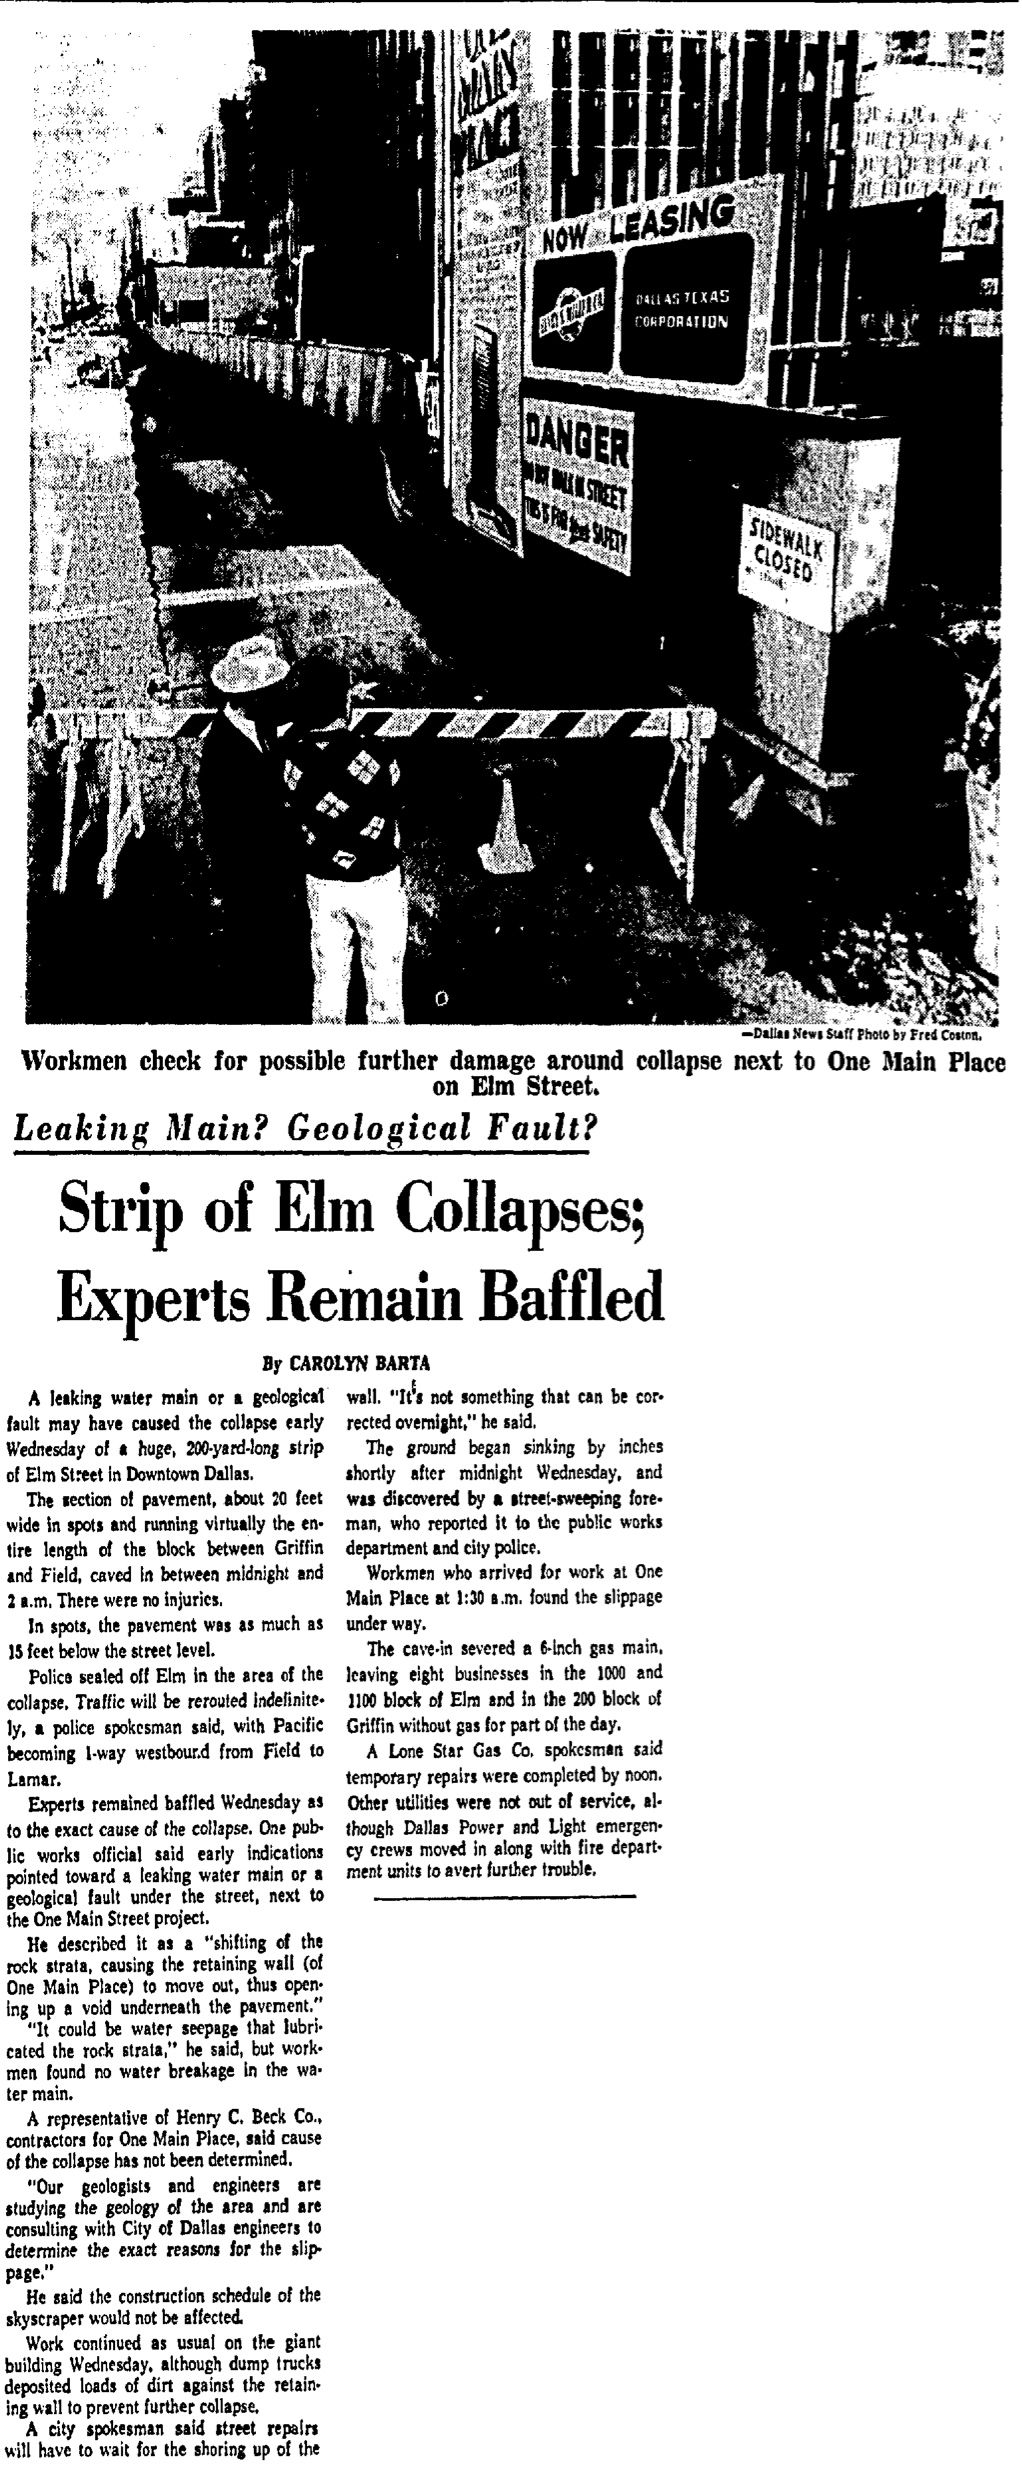 The great Elm Street cave-in of 1967 made headlines in Dallas.